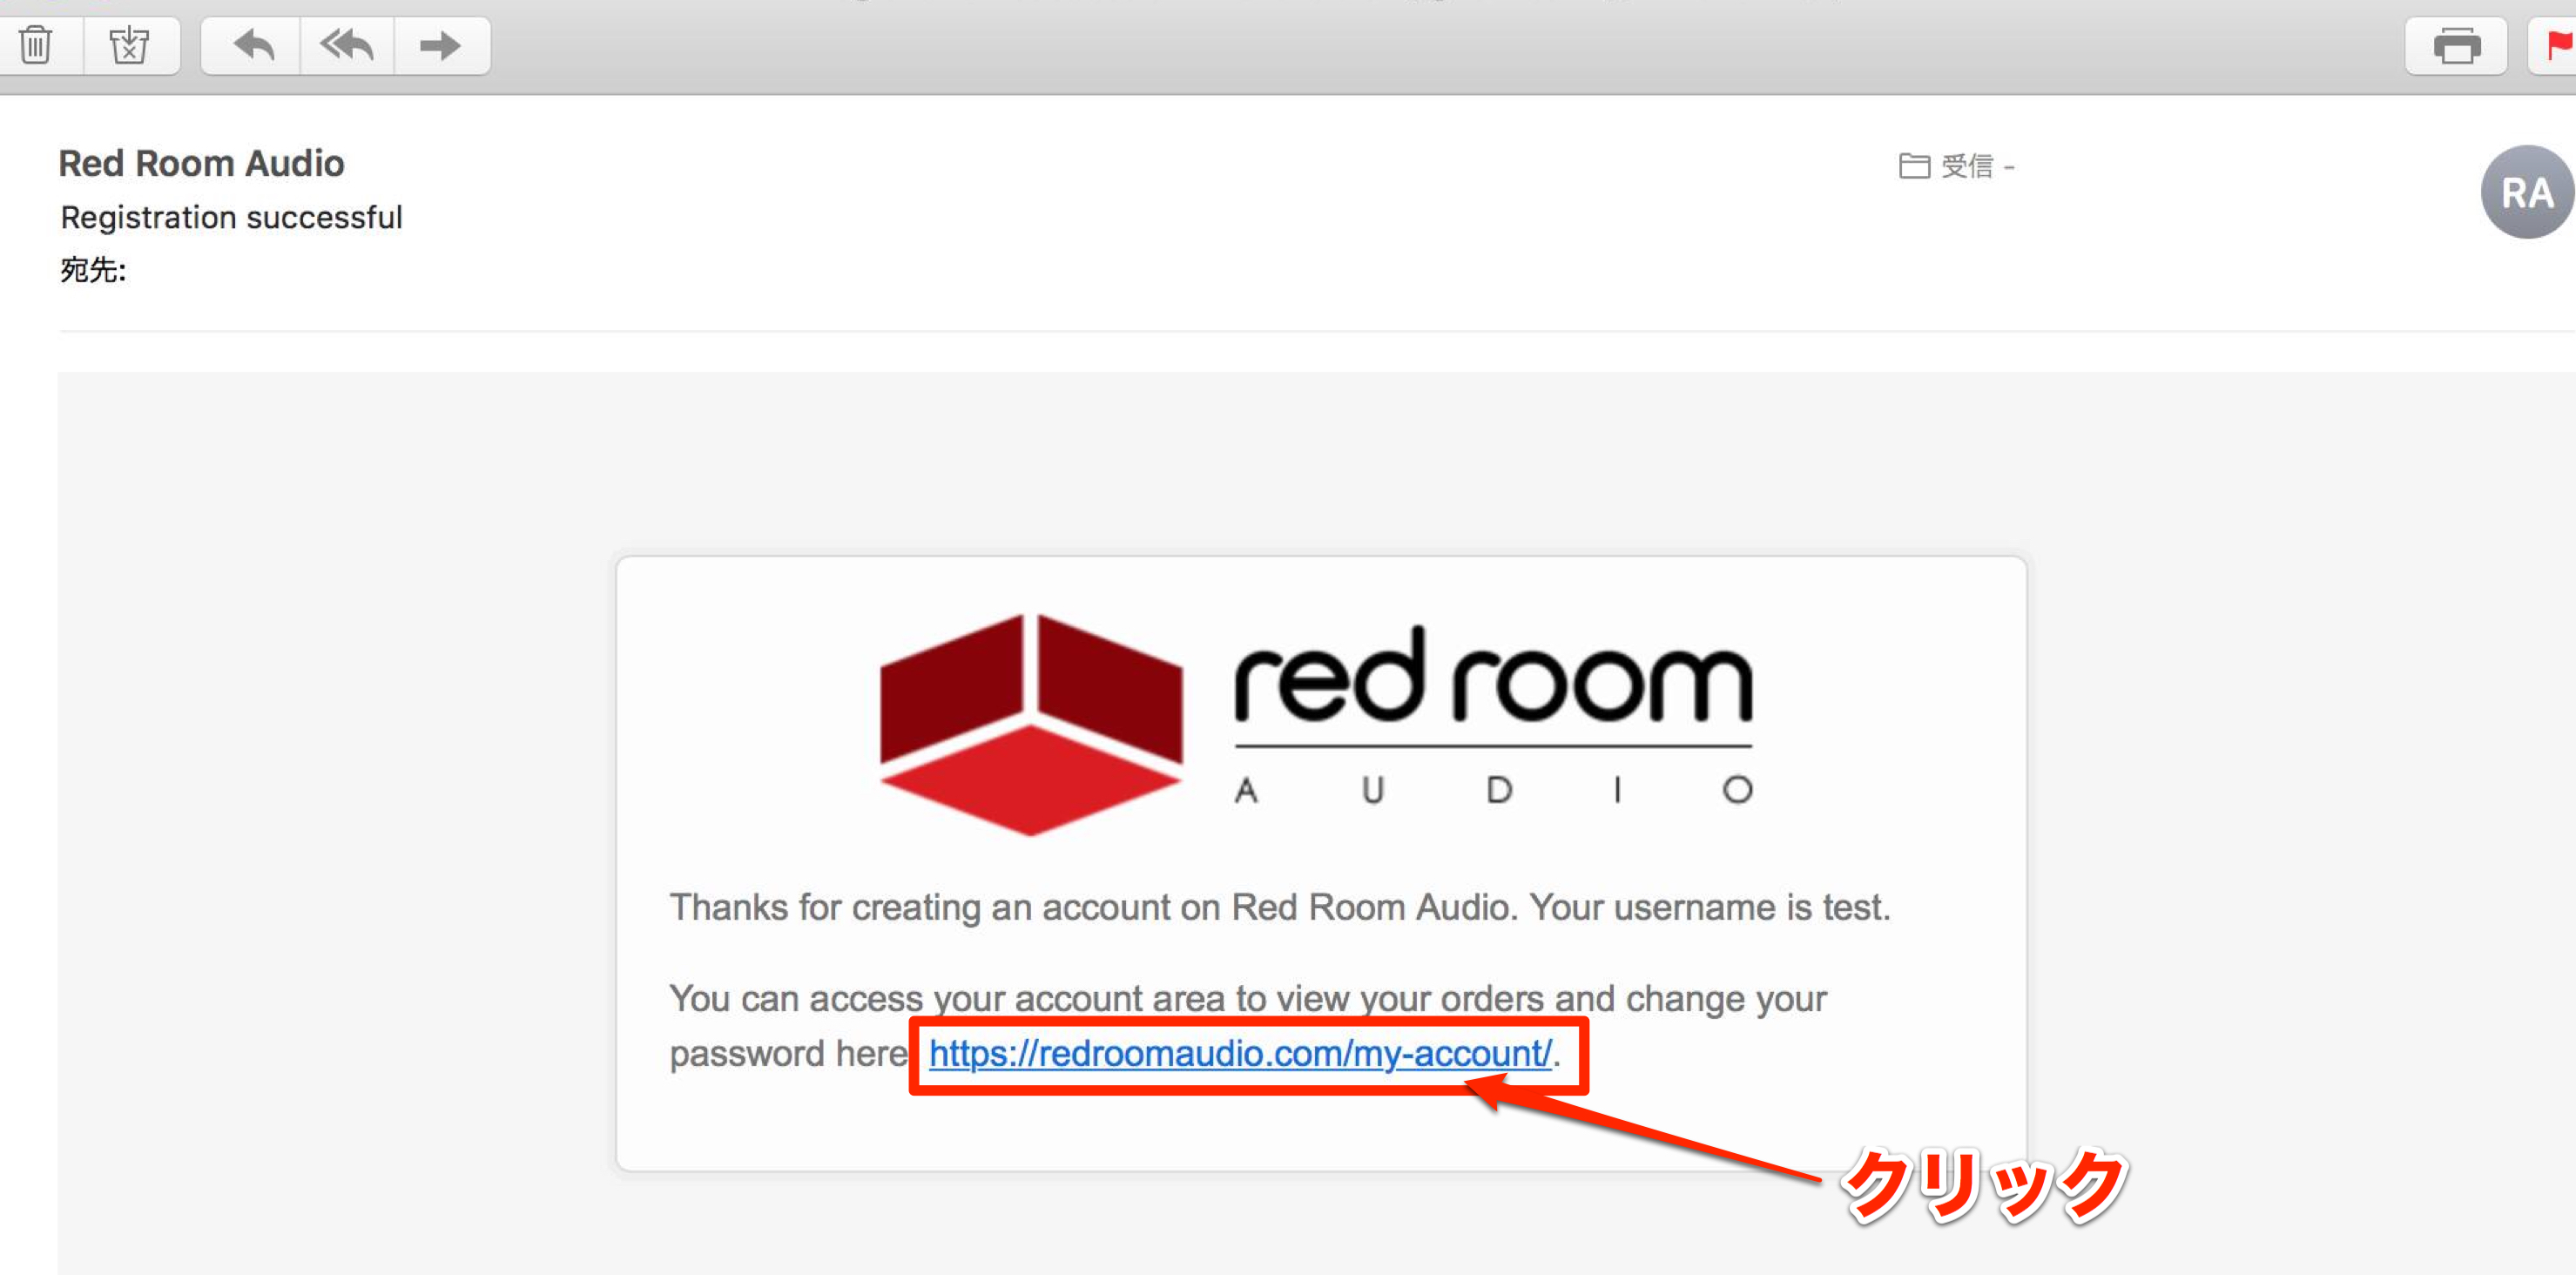 red-room-audio-accont-2-1